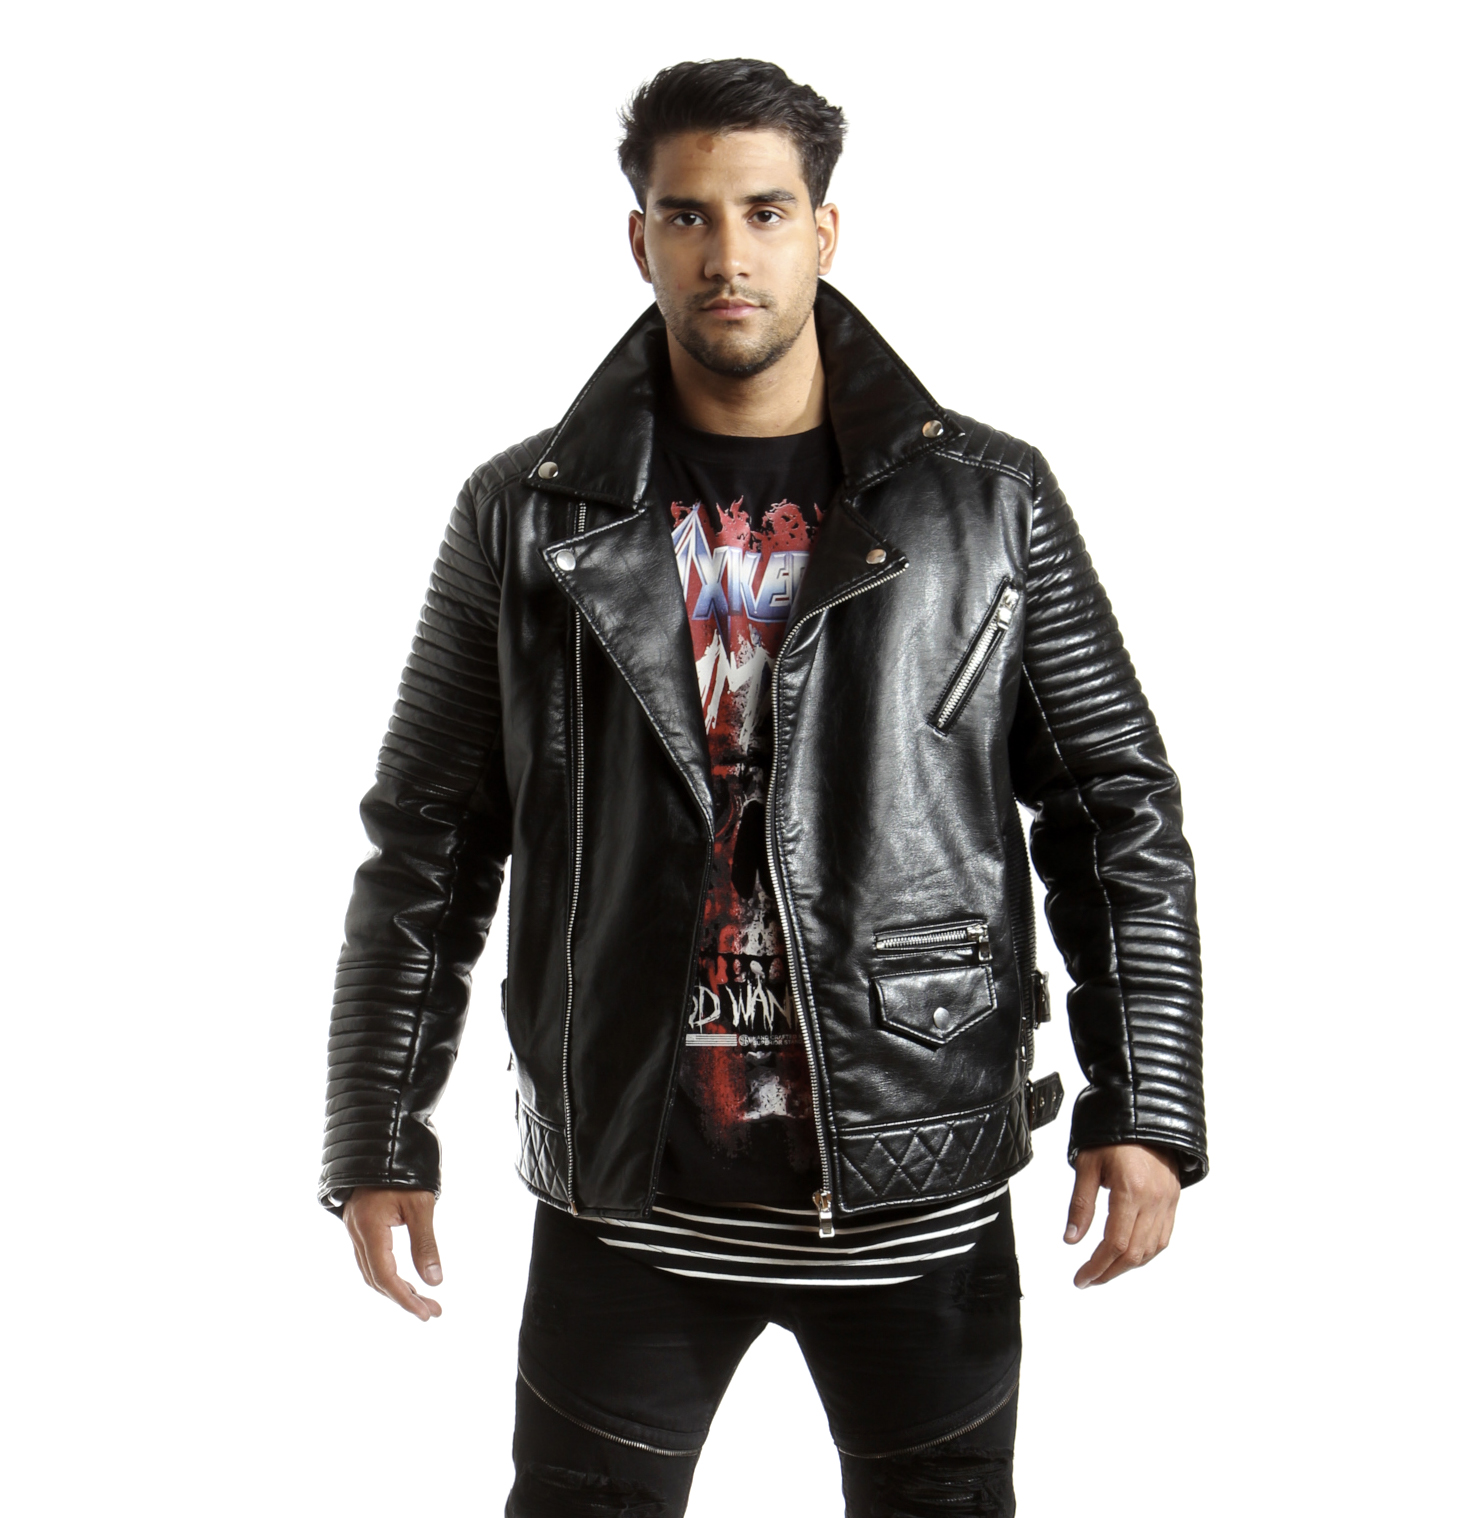 Smoke Rise Men's Vegan Leather Biker Jacket | eBay